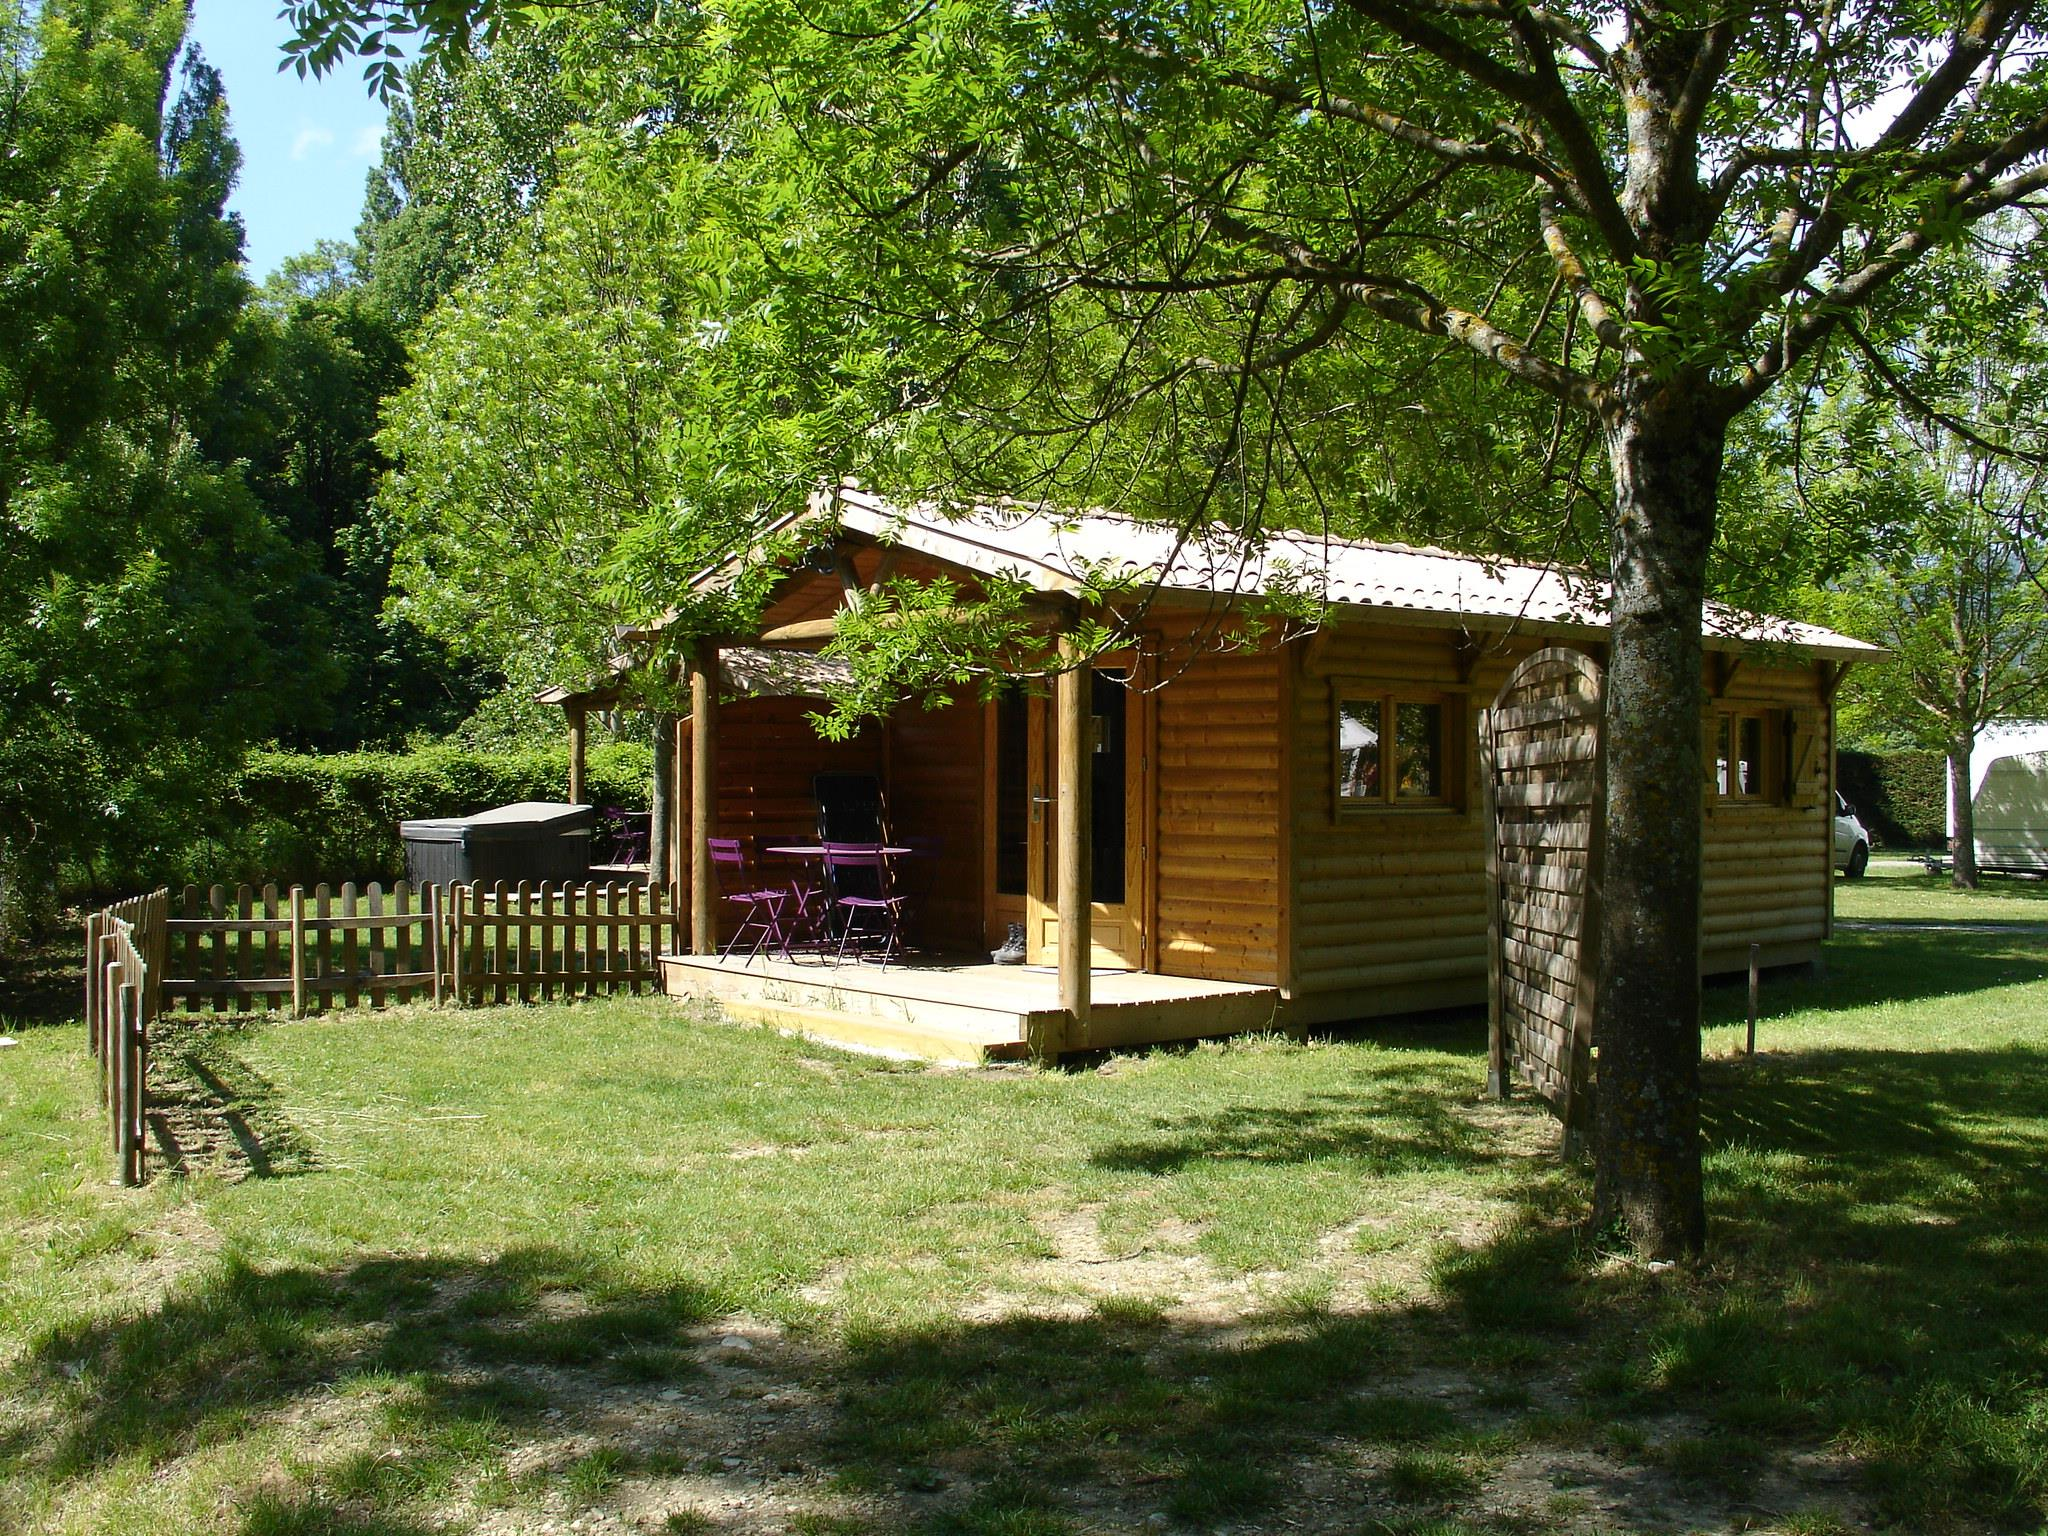 Accommodation - Chalet *** 2 Bedrooms - YELLOH! VILLAGE - DOMAINE PROVENCAL